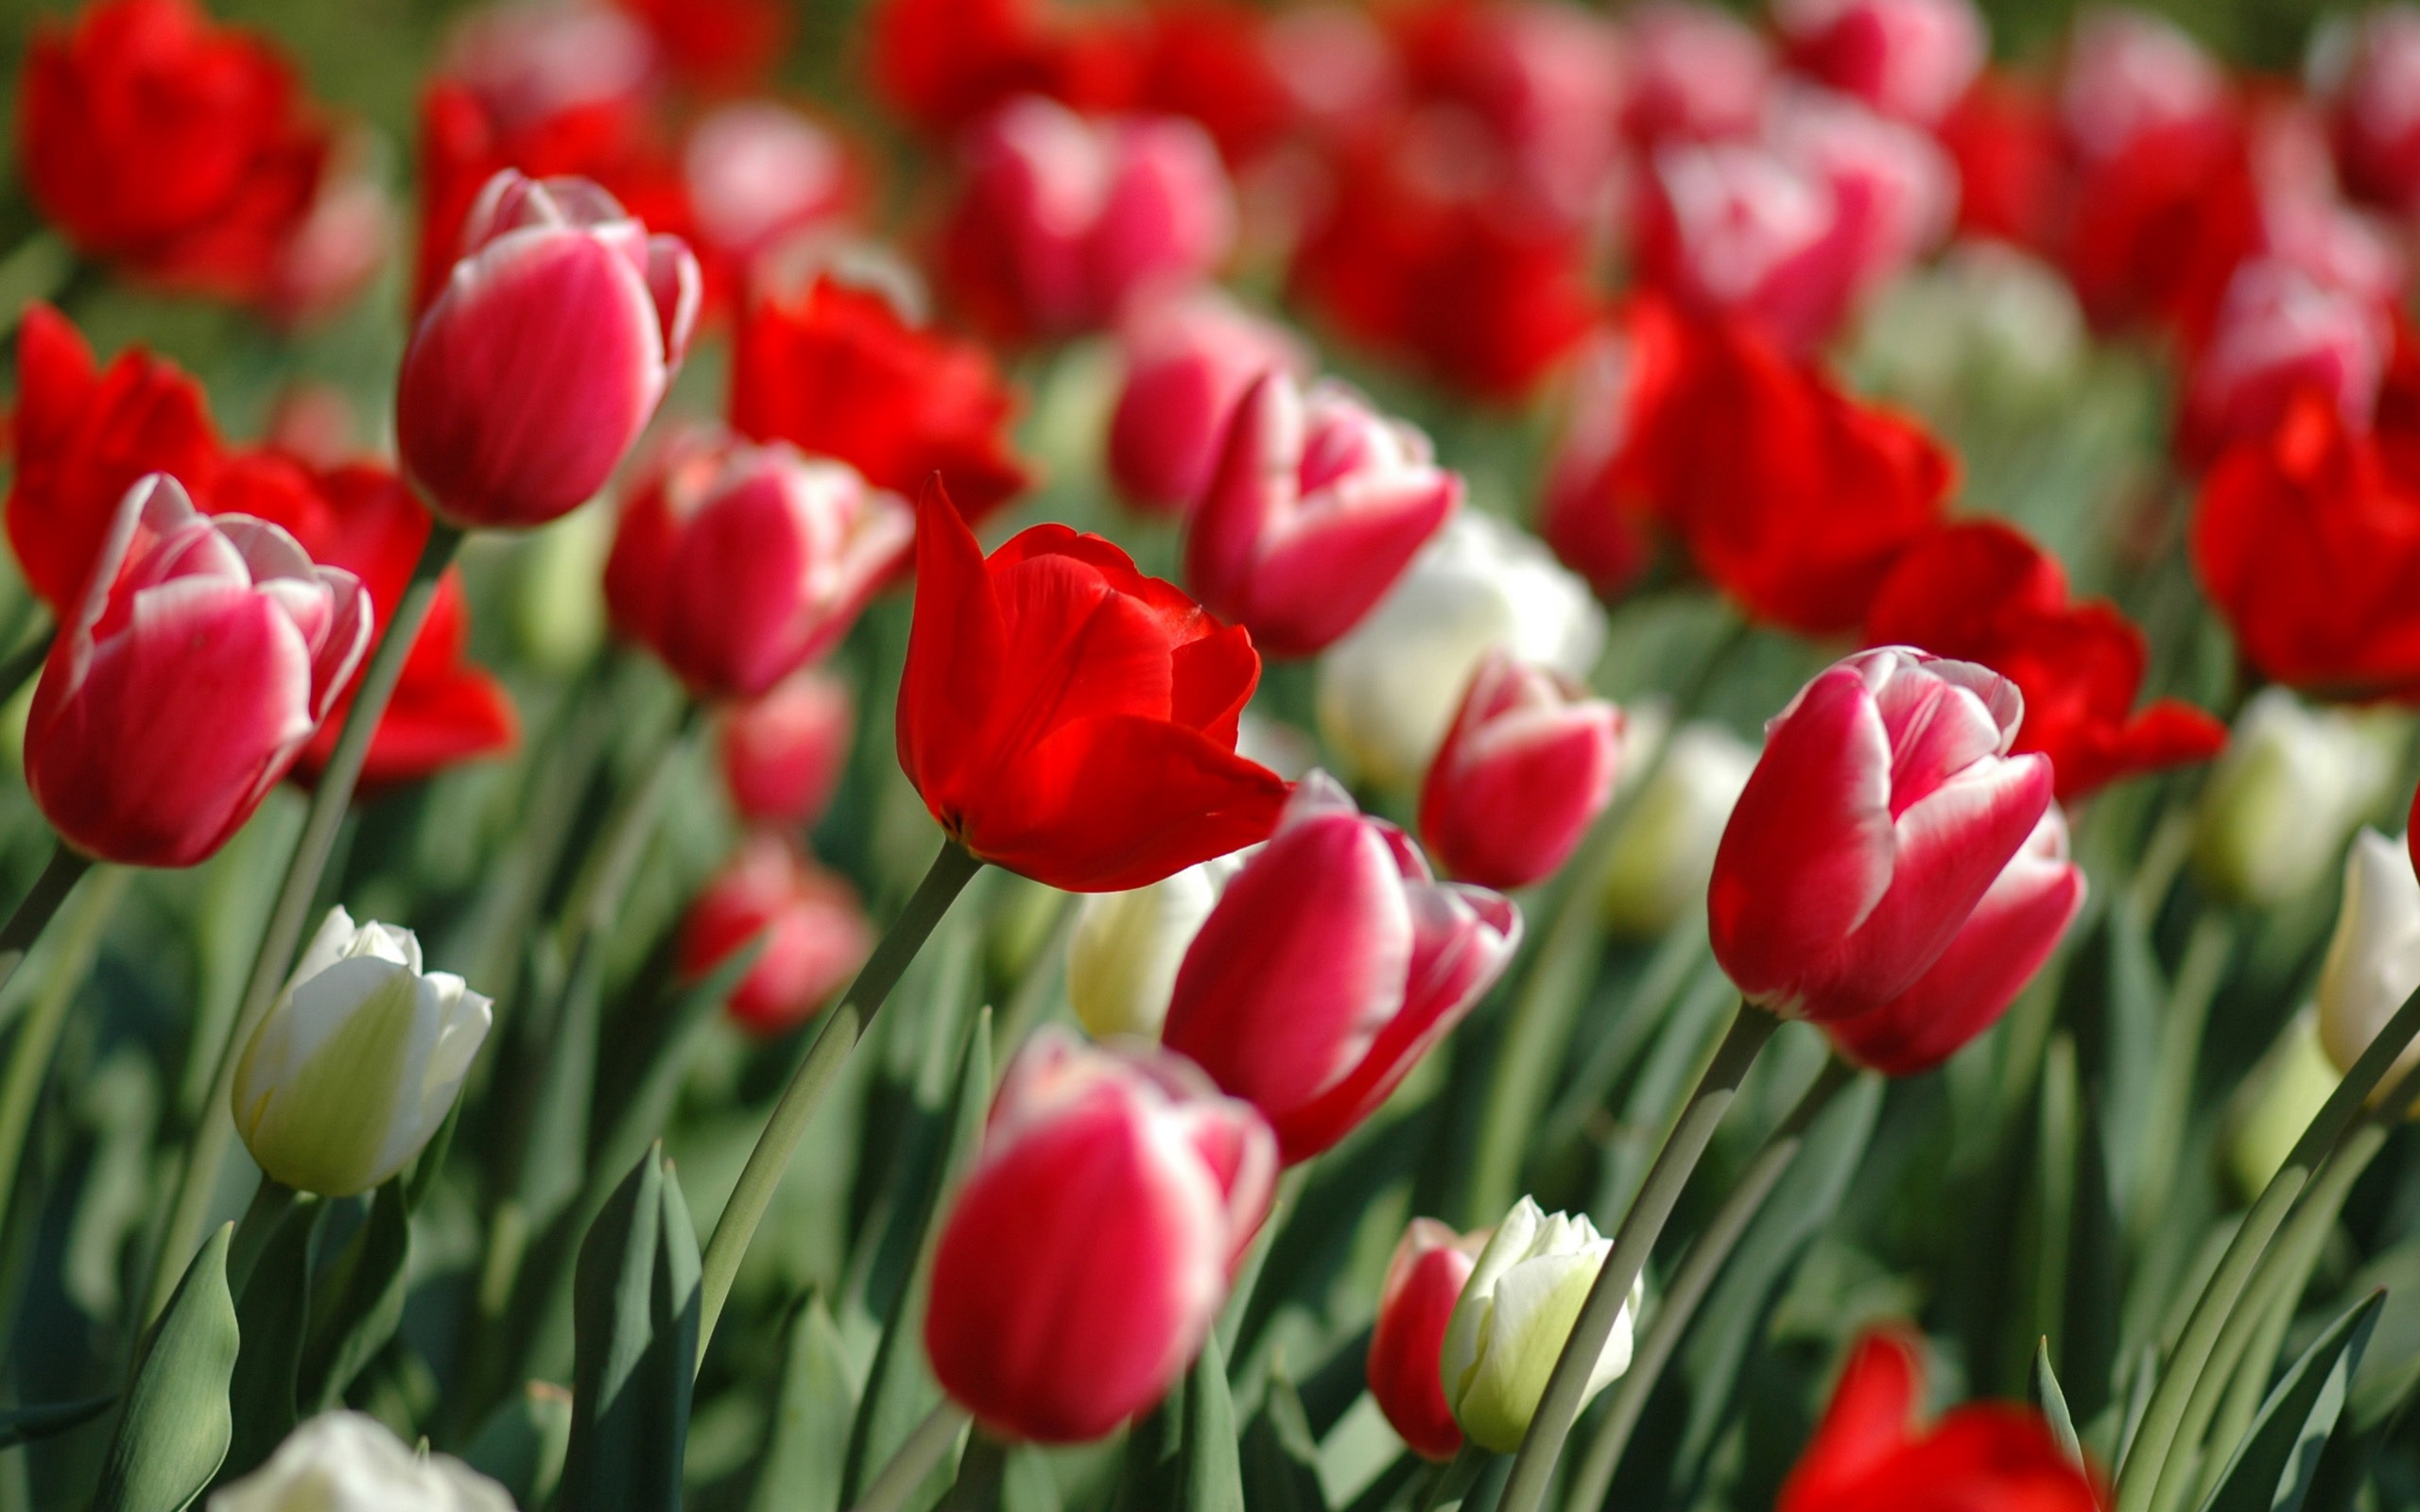 Spring tulips wallpaper flowers nature wallpapers in jpg format for spring tulips wallpaper flowers nature wallpapers thecheapjerseys Choice Image